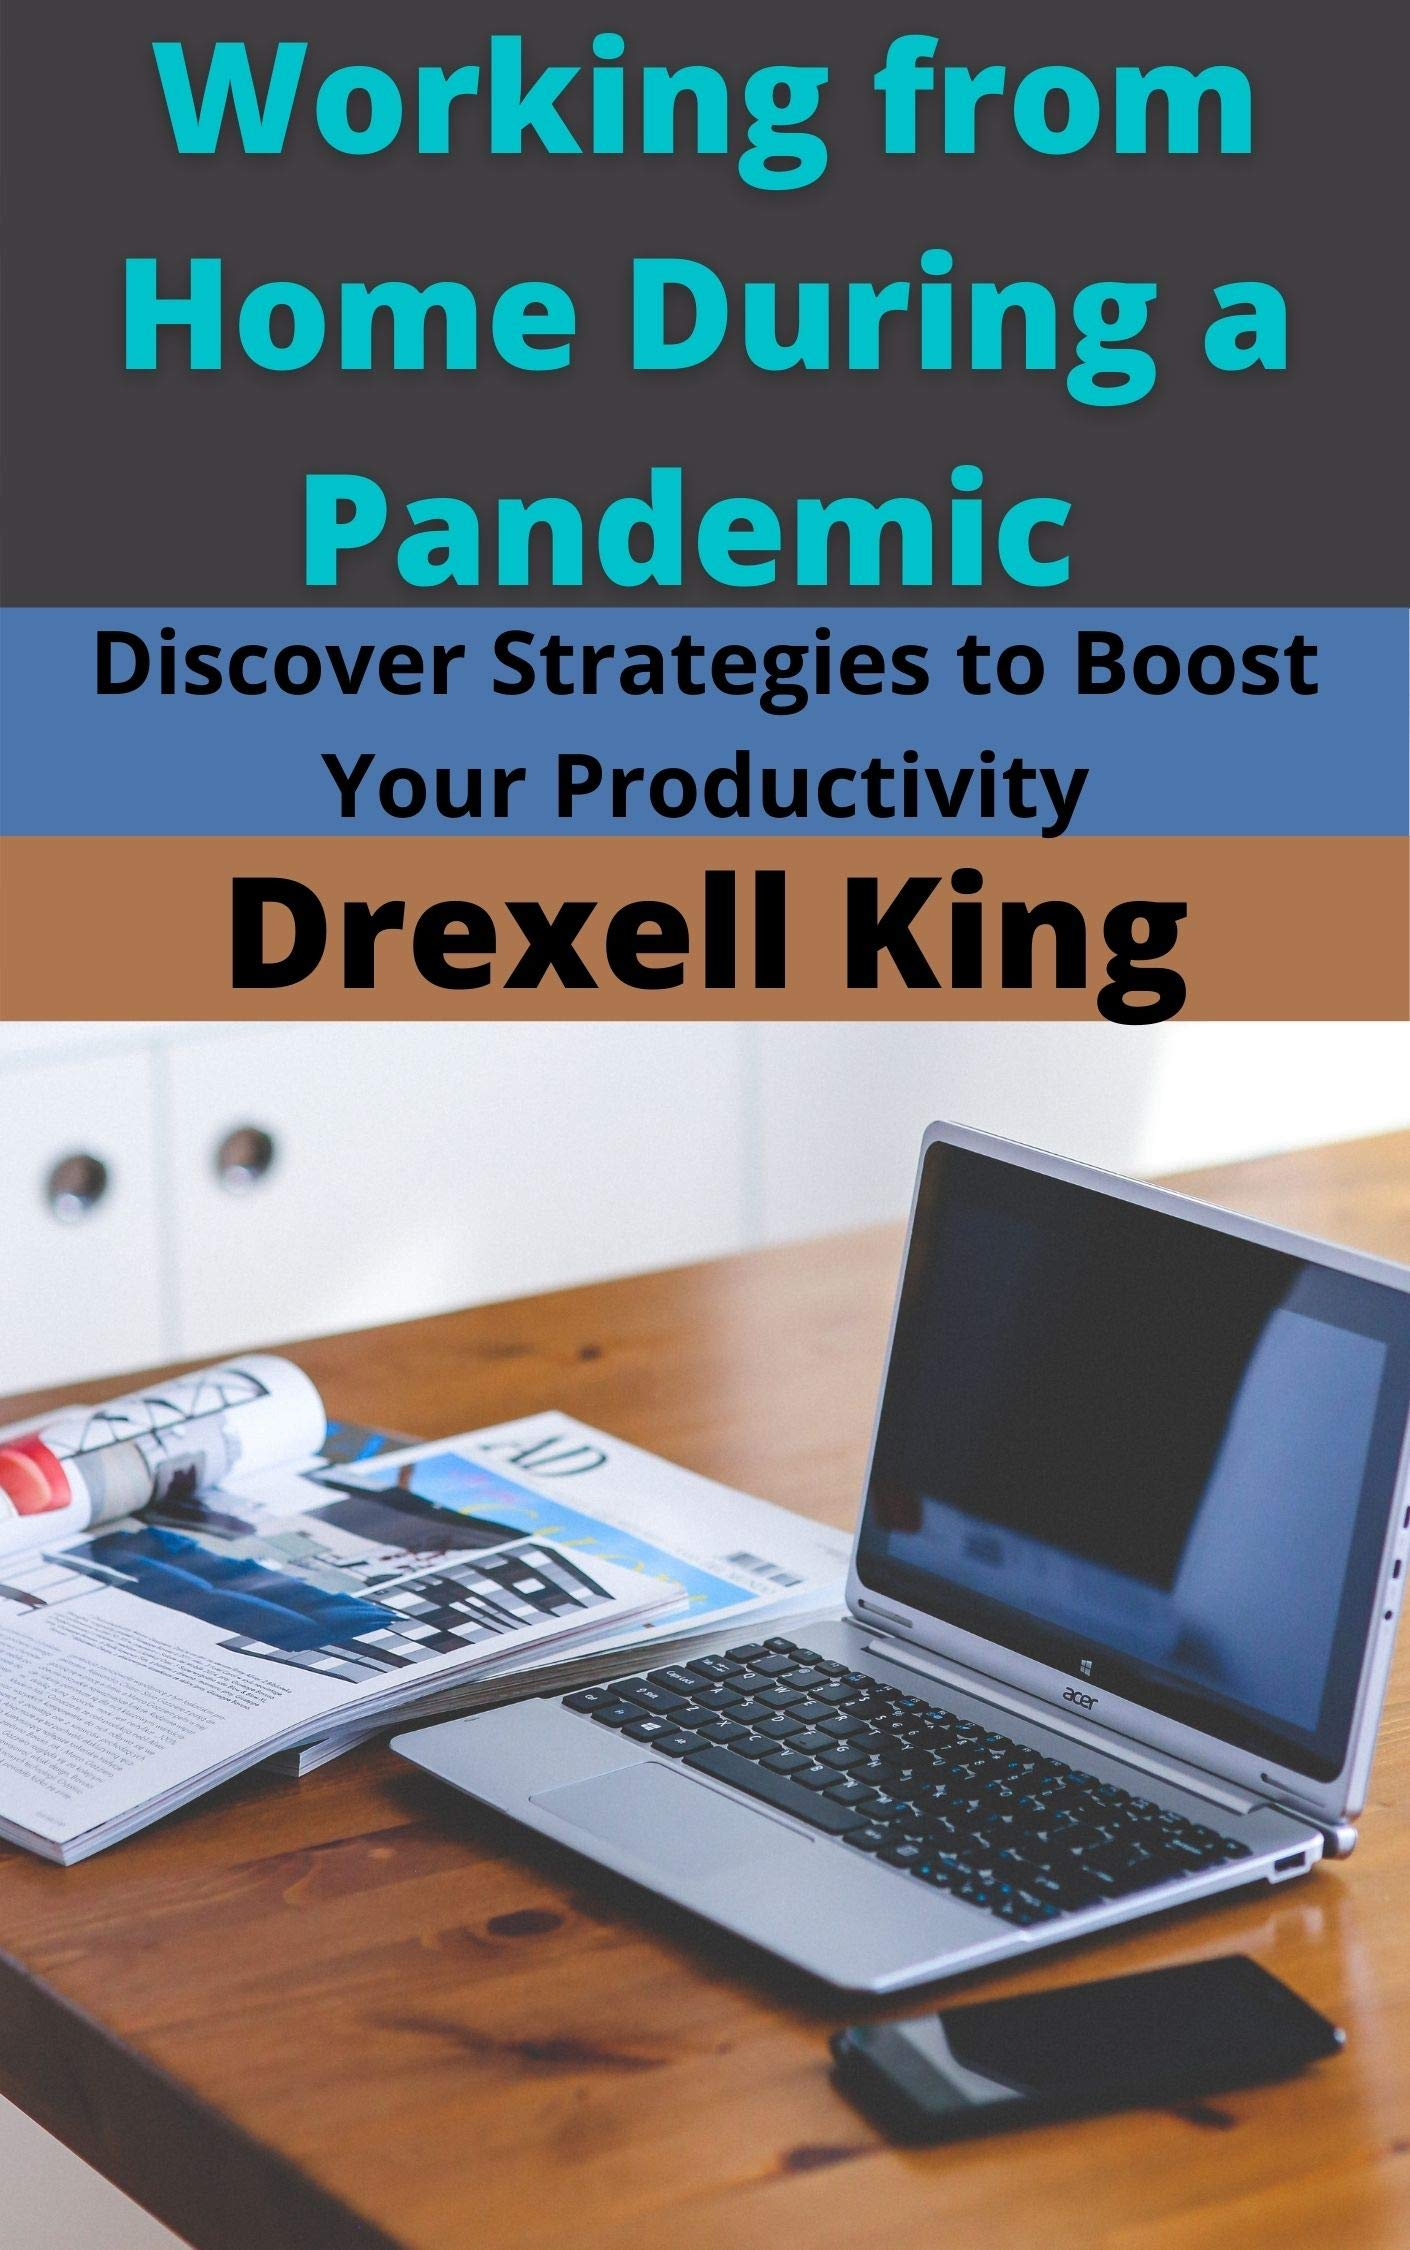 Working from Home During a Pandemic: Discover Strategies to Boost Your Productivity